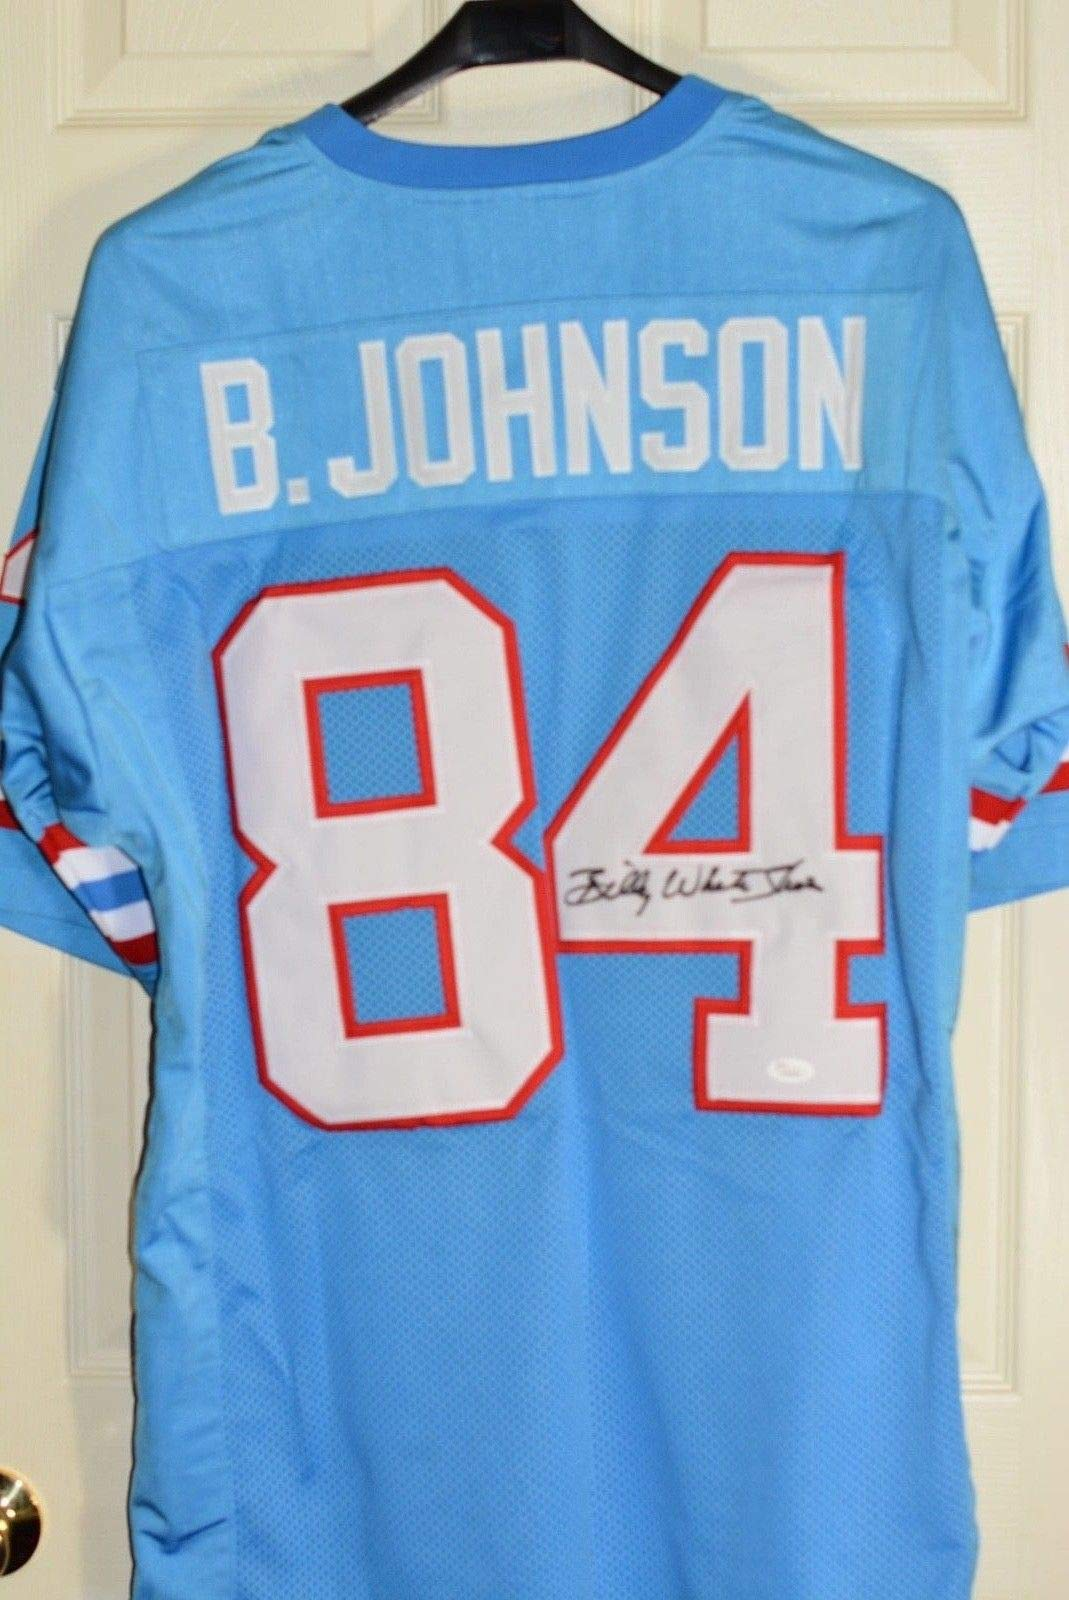 Billy white Shoes Johnson Autographed Signed/Autographed Signed Powder Blue Jersey JSA Authentic